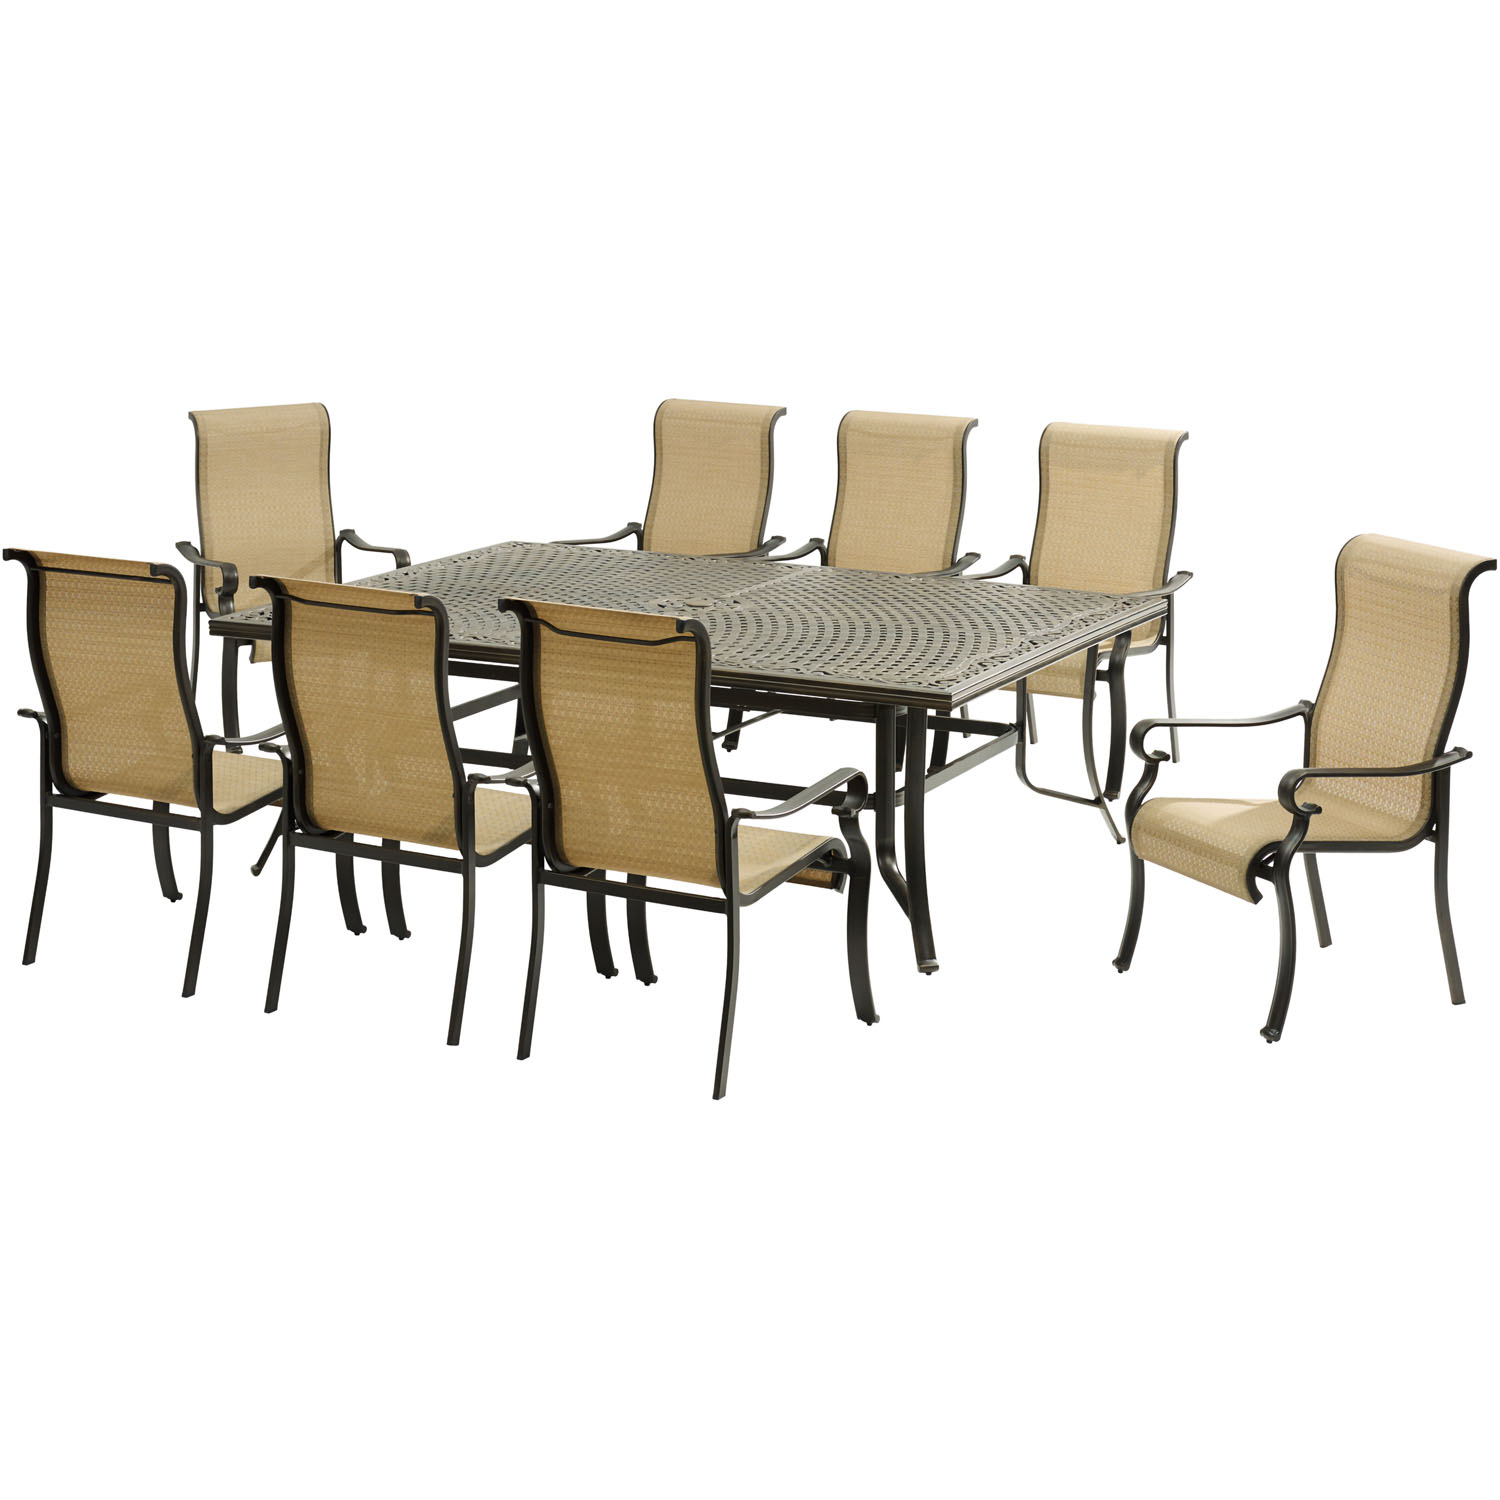 Hanover Brigantine 9-Piece Dining Set with an XL Cast-Top Dining Table and 8 Sling-back Dining Chairs